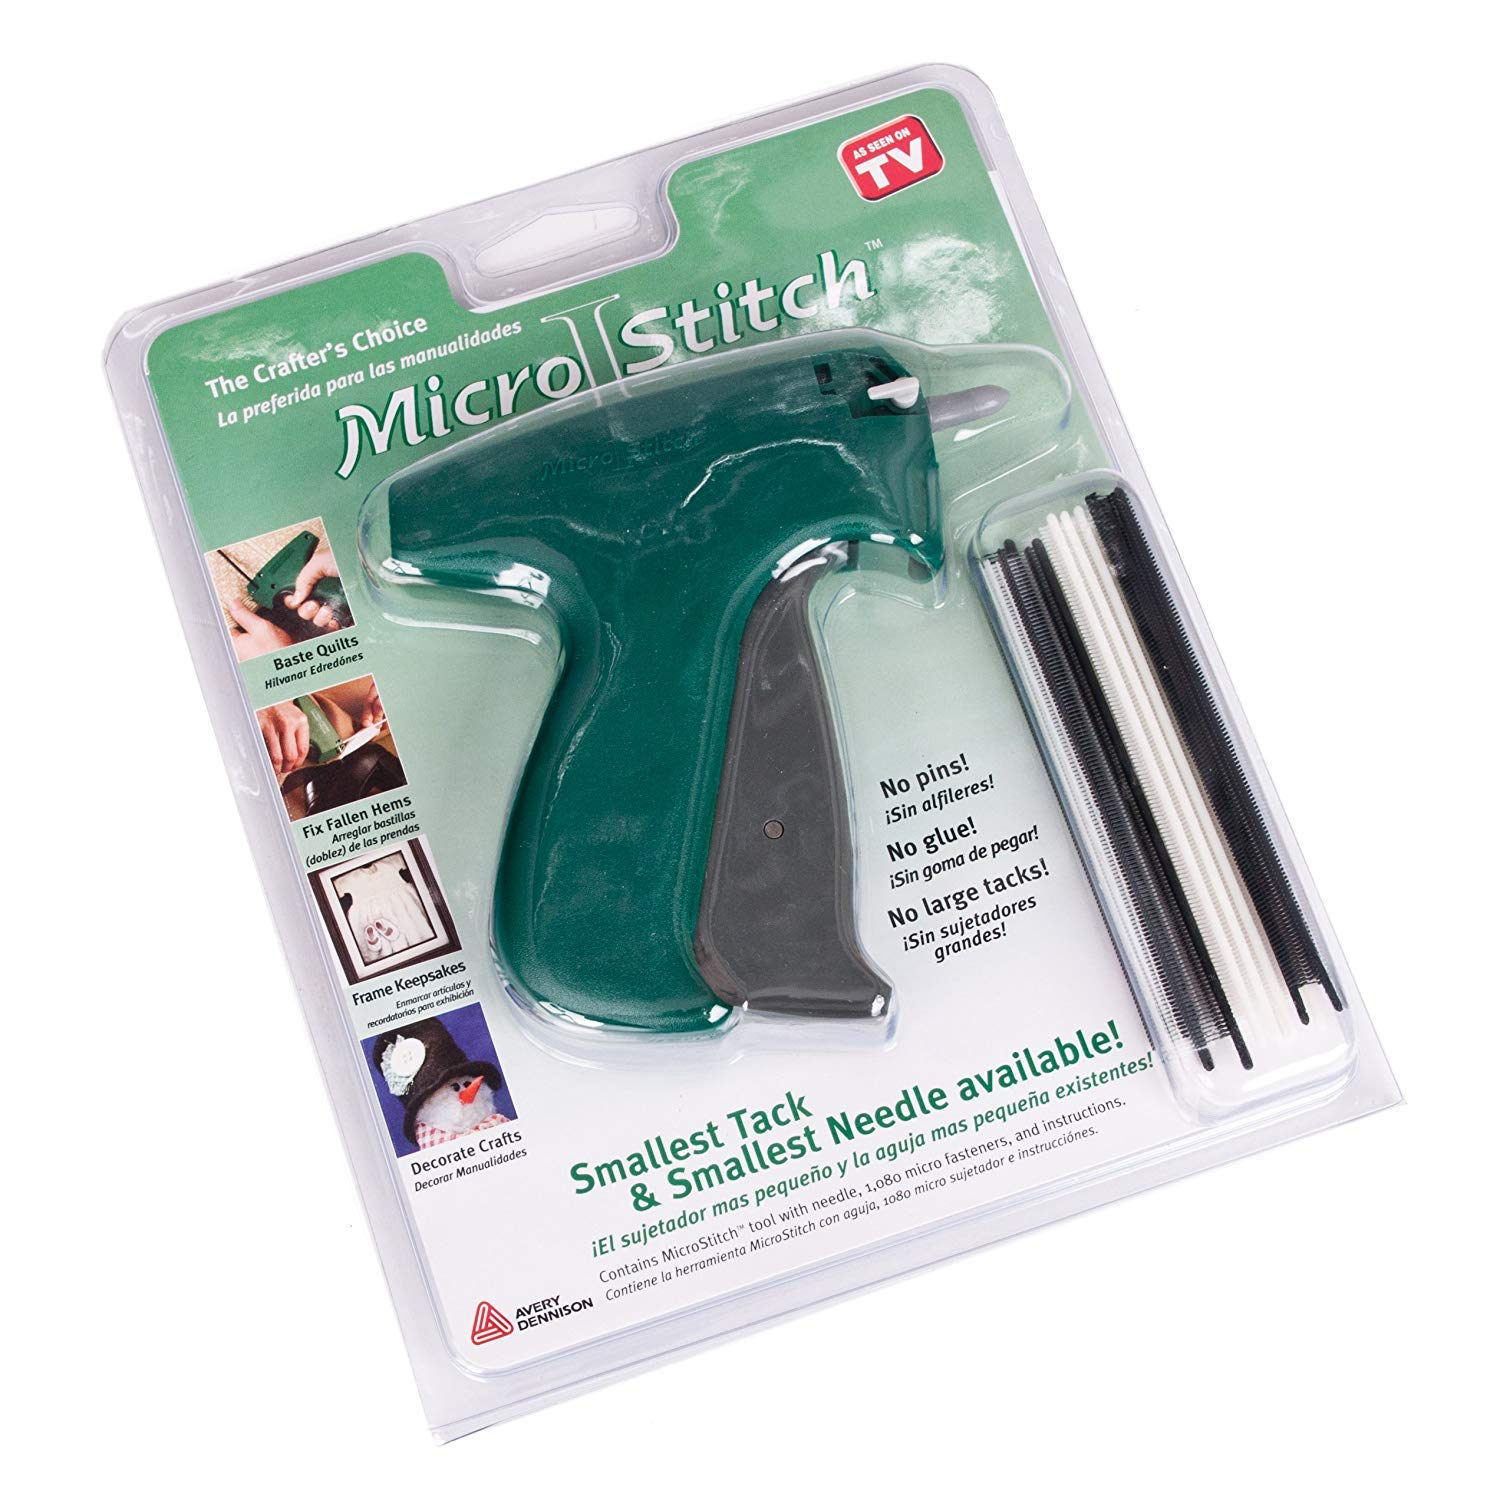 Amazon.com: Avery Dennison Micro Stitch Basting Gun with Free Tacks & Protective Needle Grate